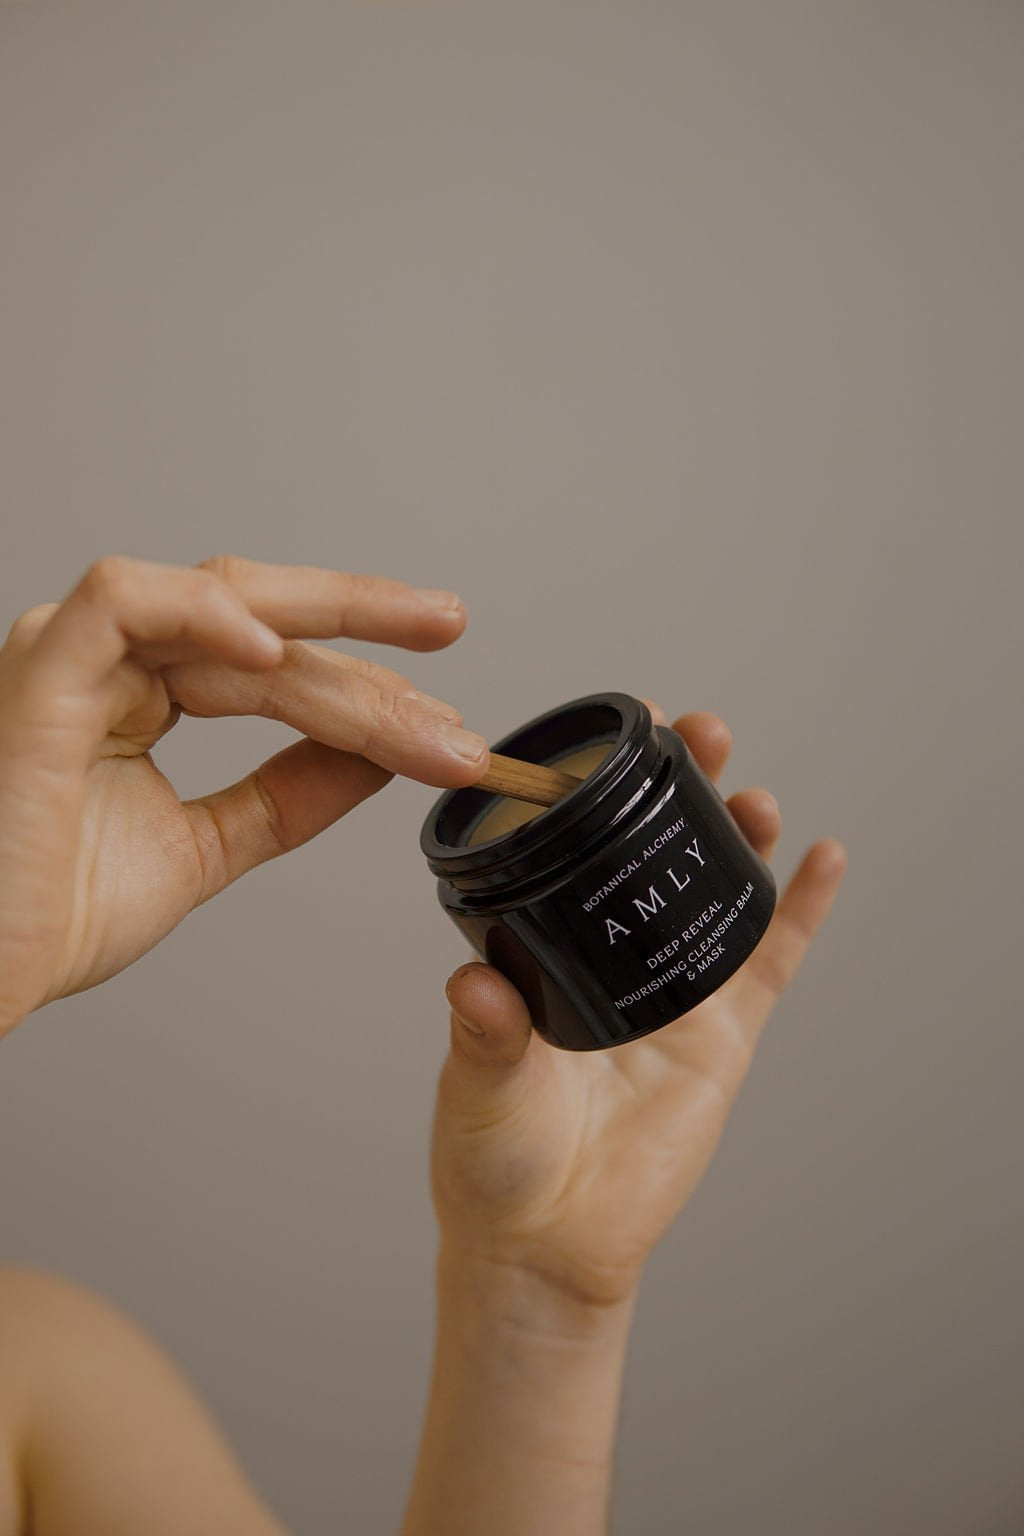 AMLY Botanical Deep Reveal nourishing face mask 100ml in hand, being scooped with spatula